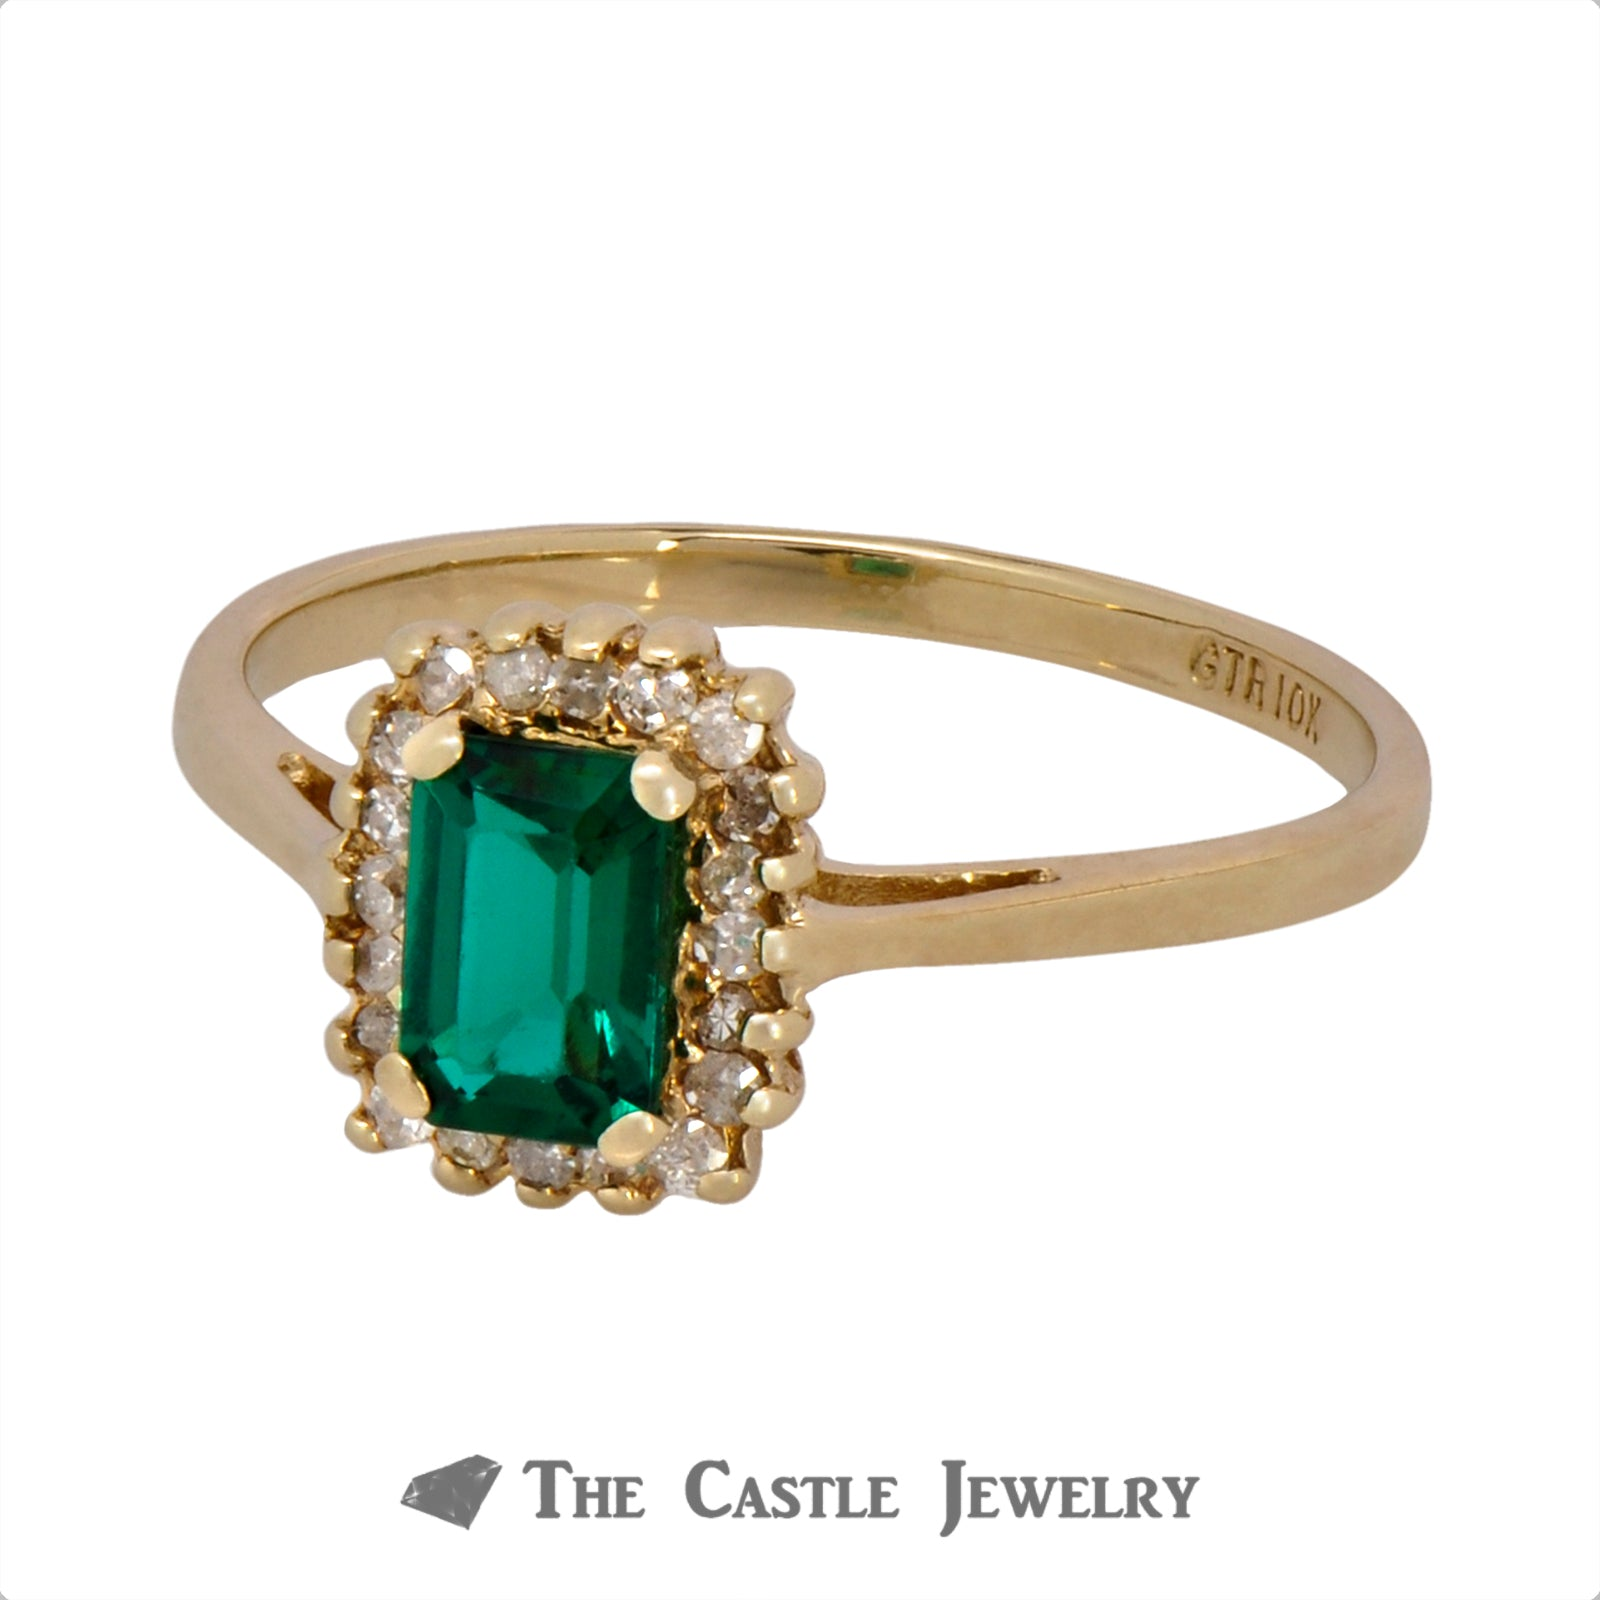 Emerald Ring with Round Brilliant Cut Diamond Halo Crafted in 10k Yellow Gold-2